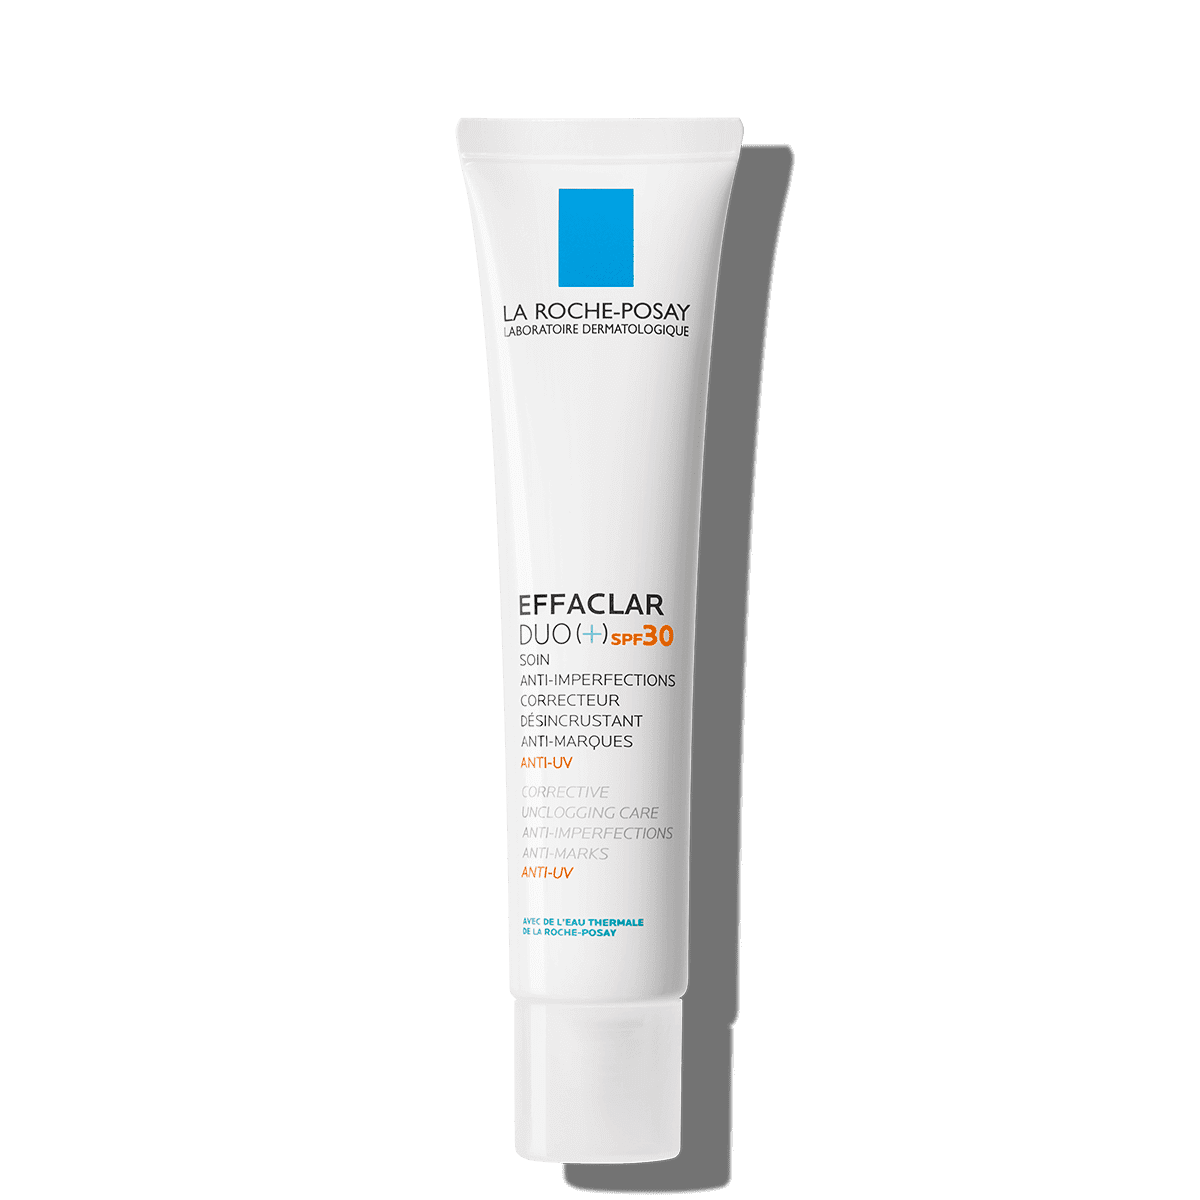 Effaclar Duo+ Spf30 Anti Imperfections Marks UV 40ml Moisturizer